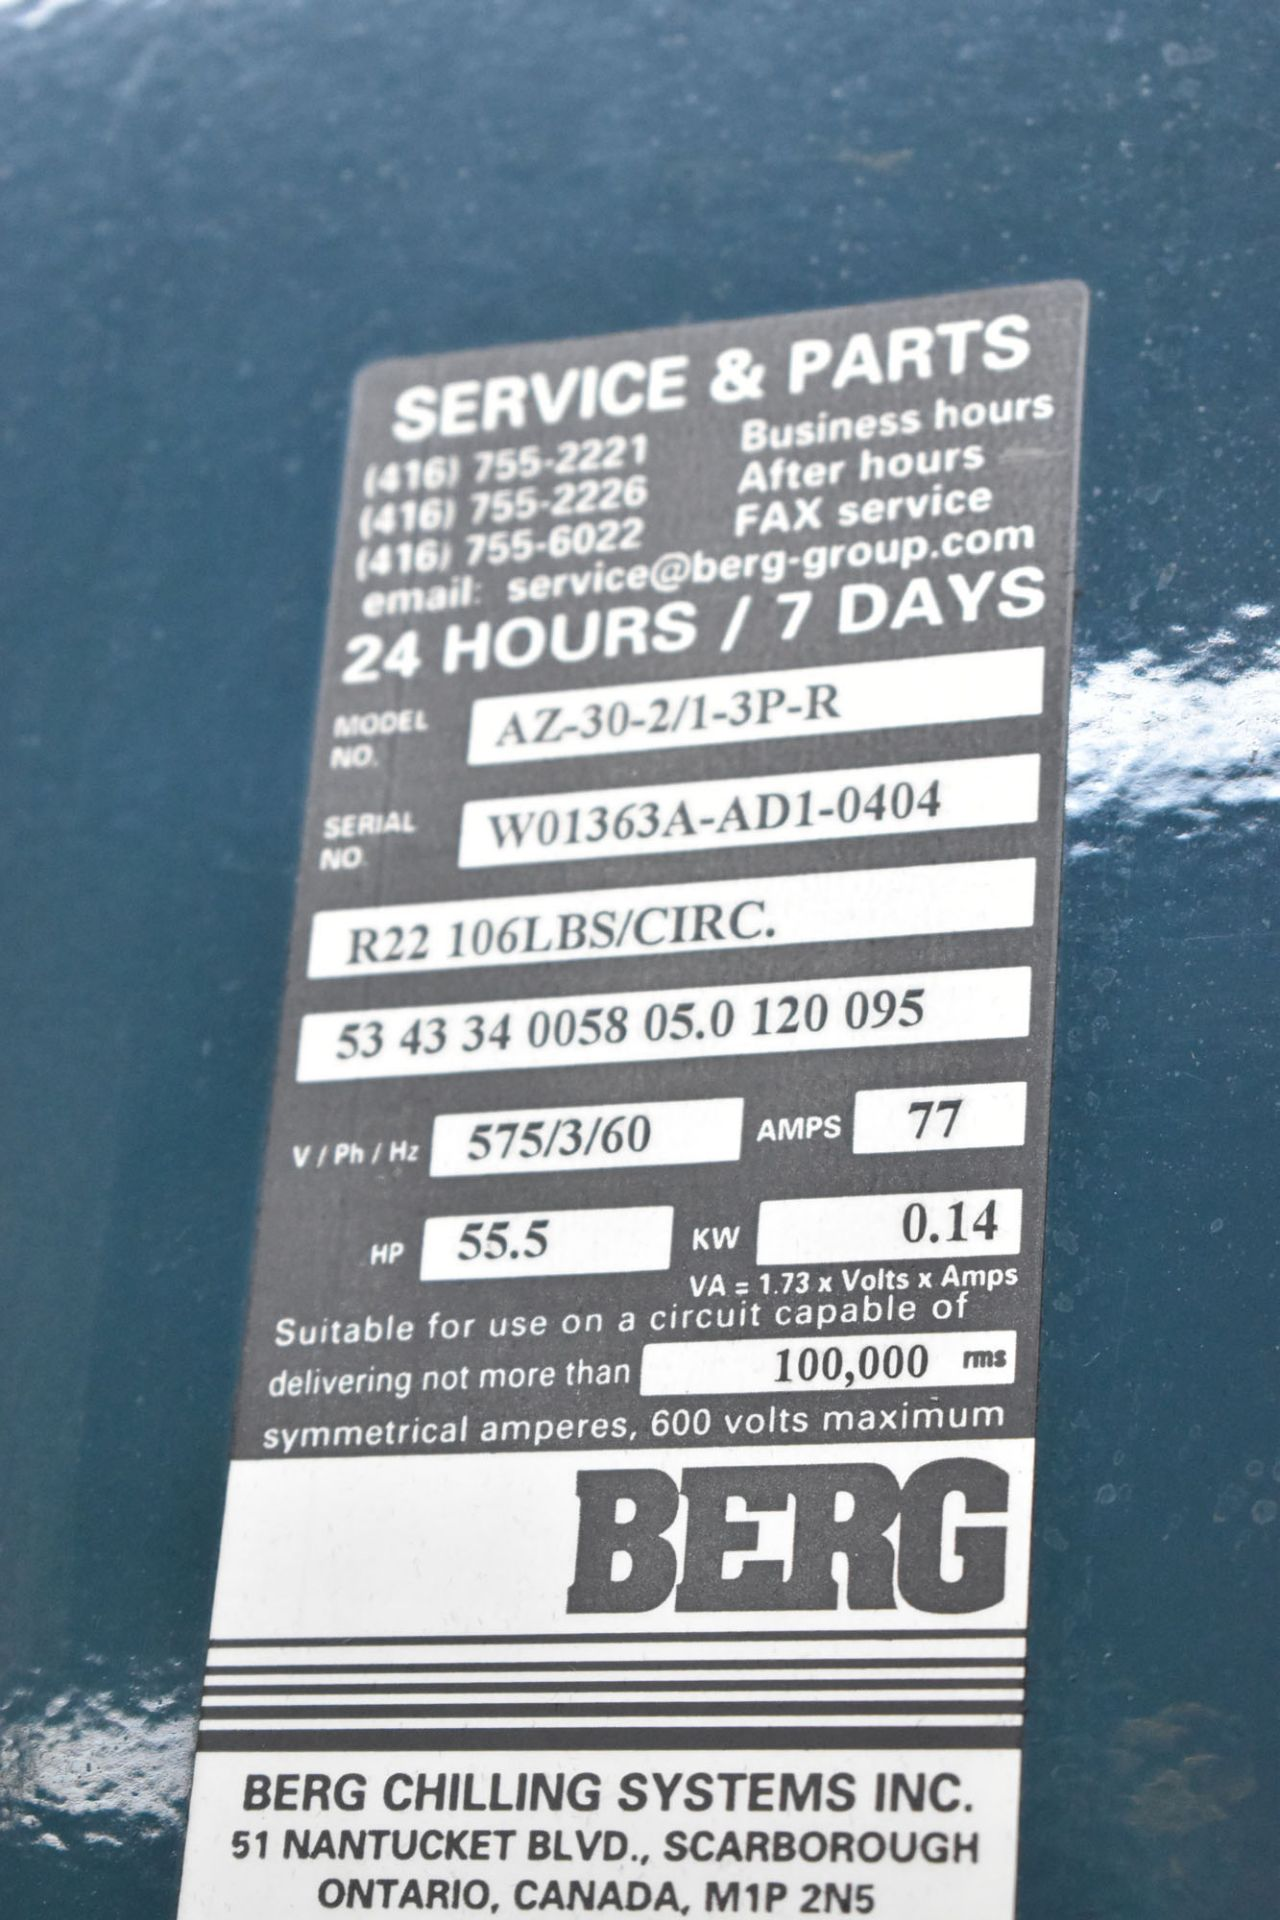 BERG AZ-30-2/1-3P-R SKID MOUNTED INDUSTRIAL CHILLER WITH 30 TON CAPACITY, 55 HP, BERG SC6 TOUCH- - Image 6 of 6